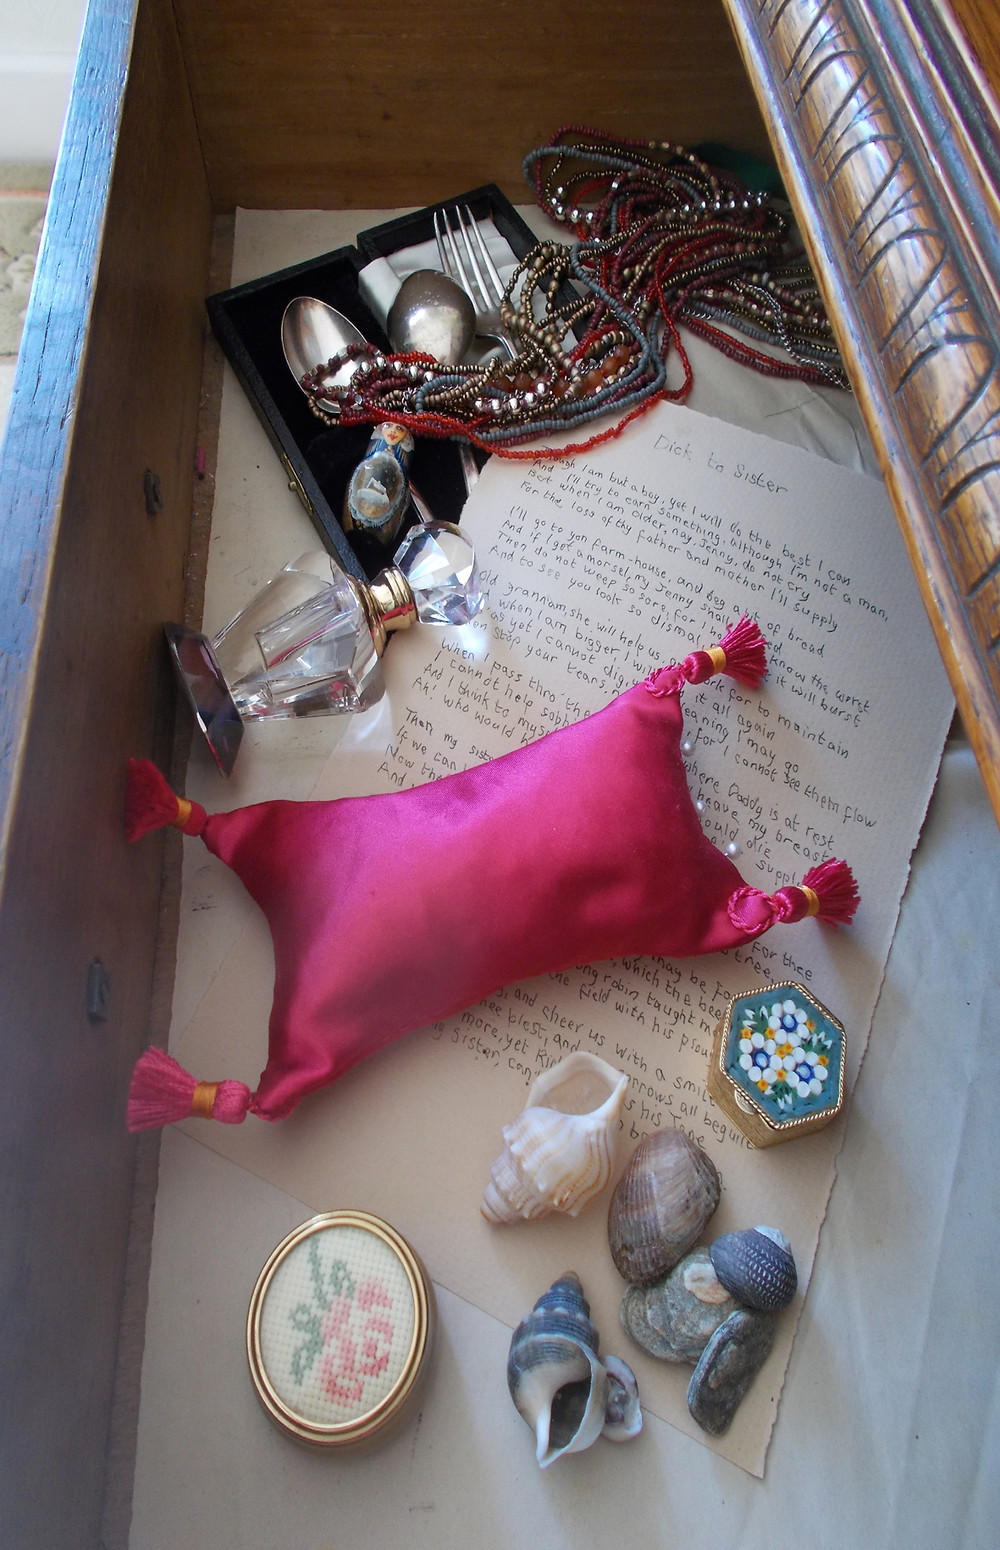 Pin Cushion in a drawer